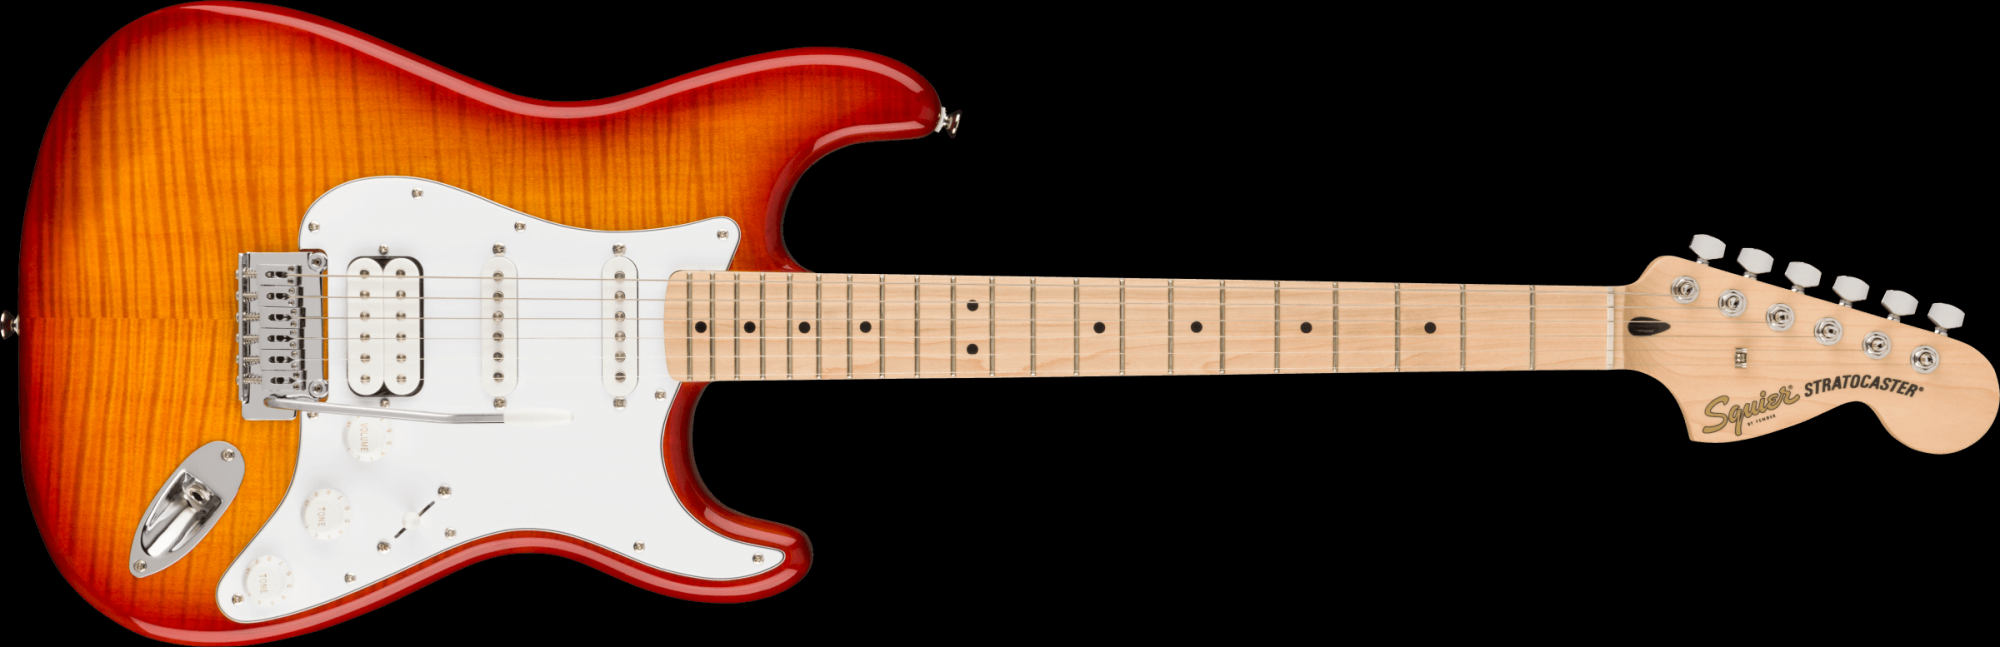 Squier Affinity Stratocaster FMT HSS